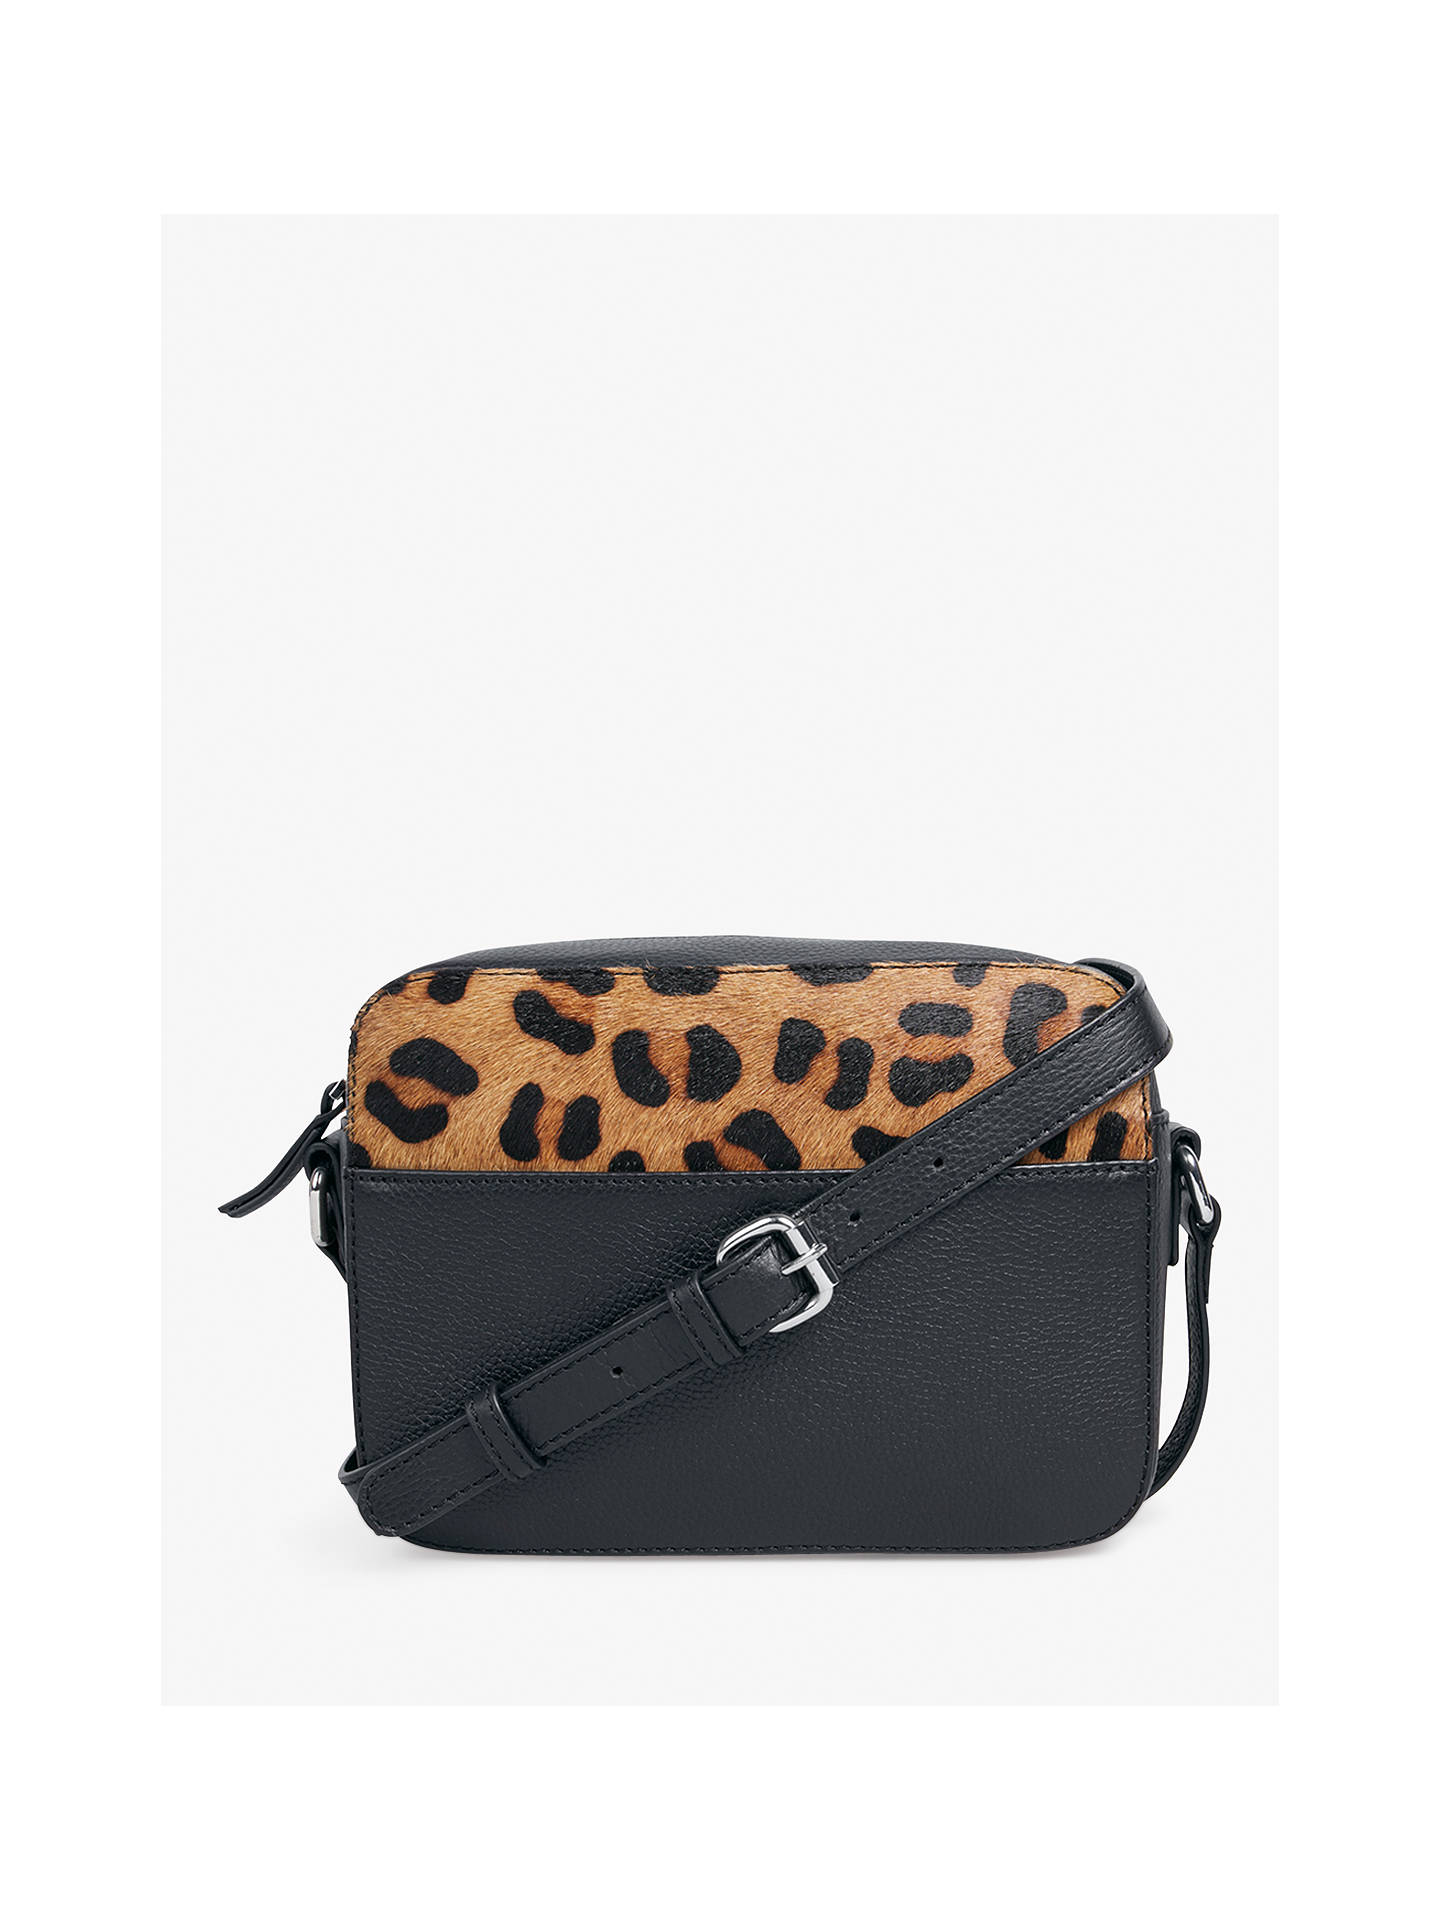 0d0743b5173 hush Flori Cross Body Bag, Black/Leopard Print